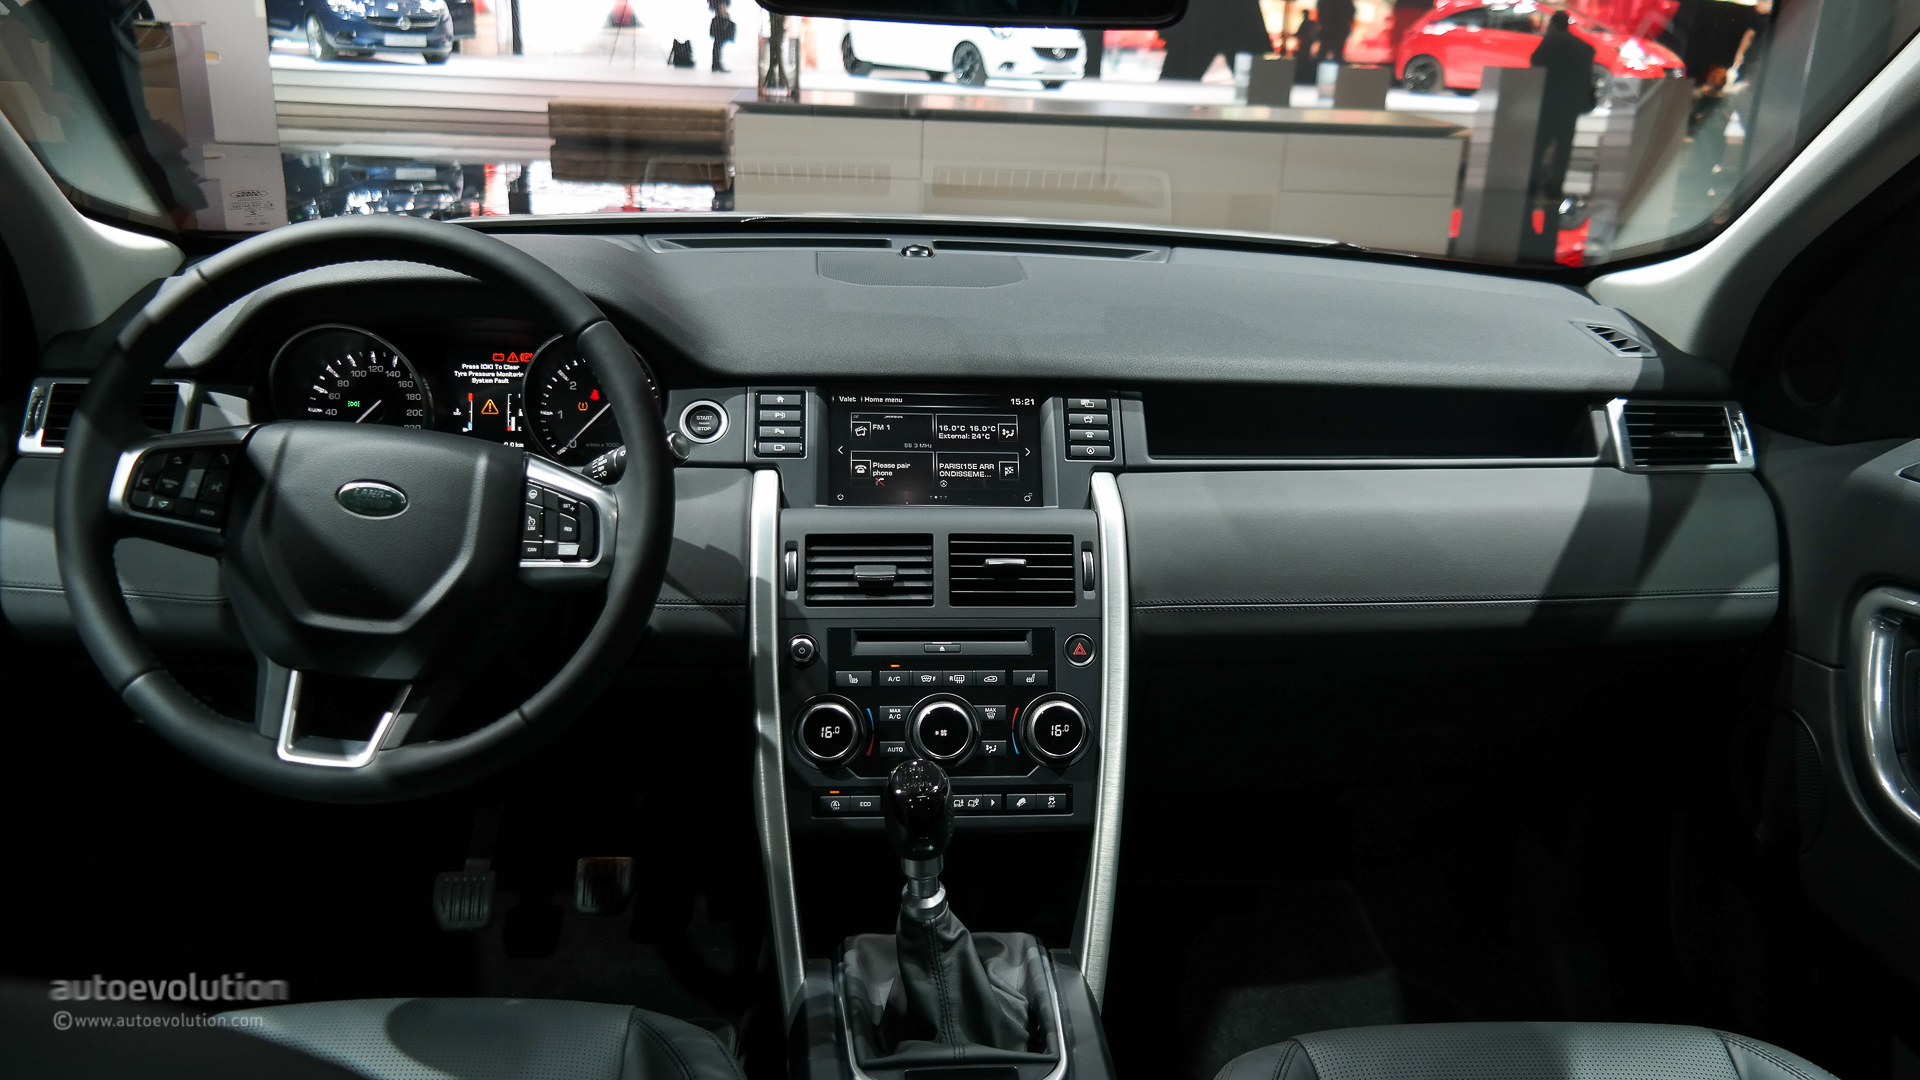 marvelous-design-of-the-black-and-silver-accents-of-car-interior-ideas-ofland-rover-discovery-sport-2015-interior-ideas-with-black-steering-wheels-ideas